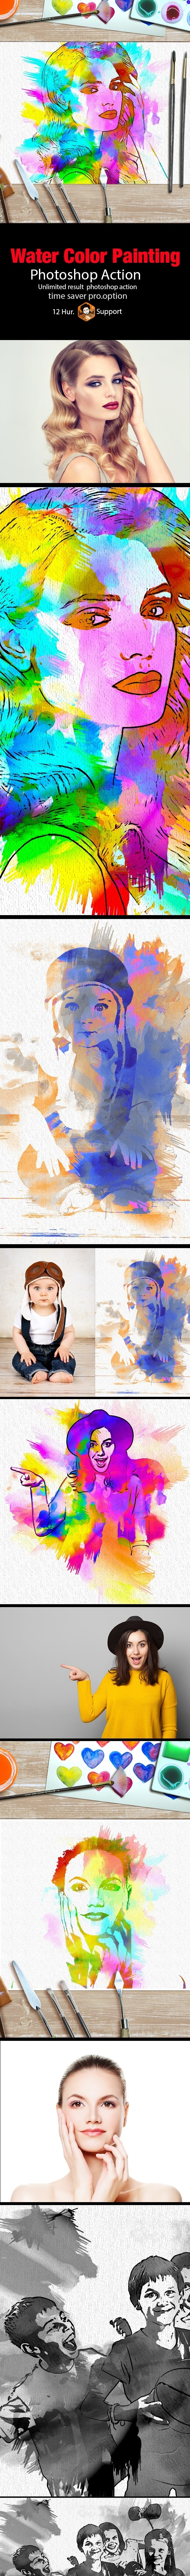 Water Color Painting - Actions Photoshop